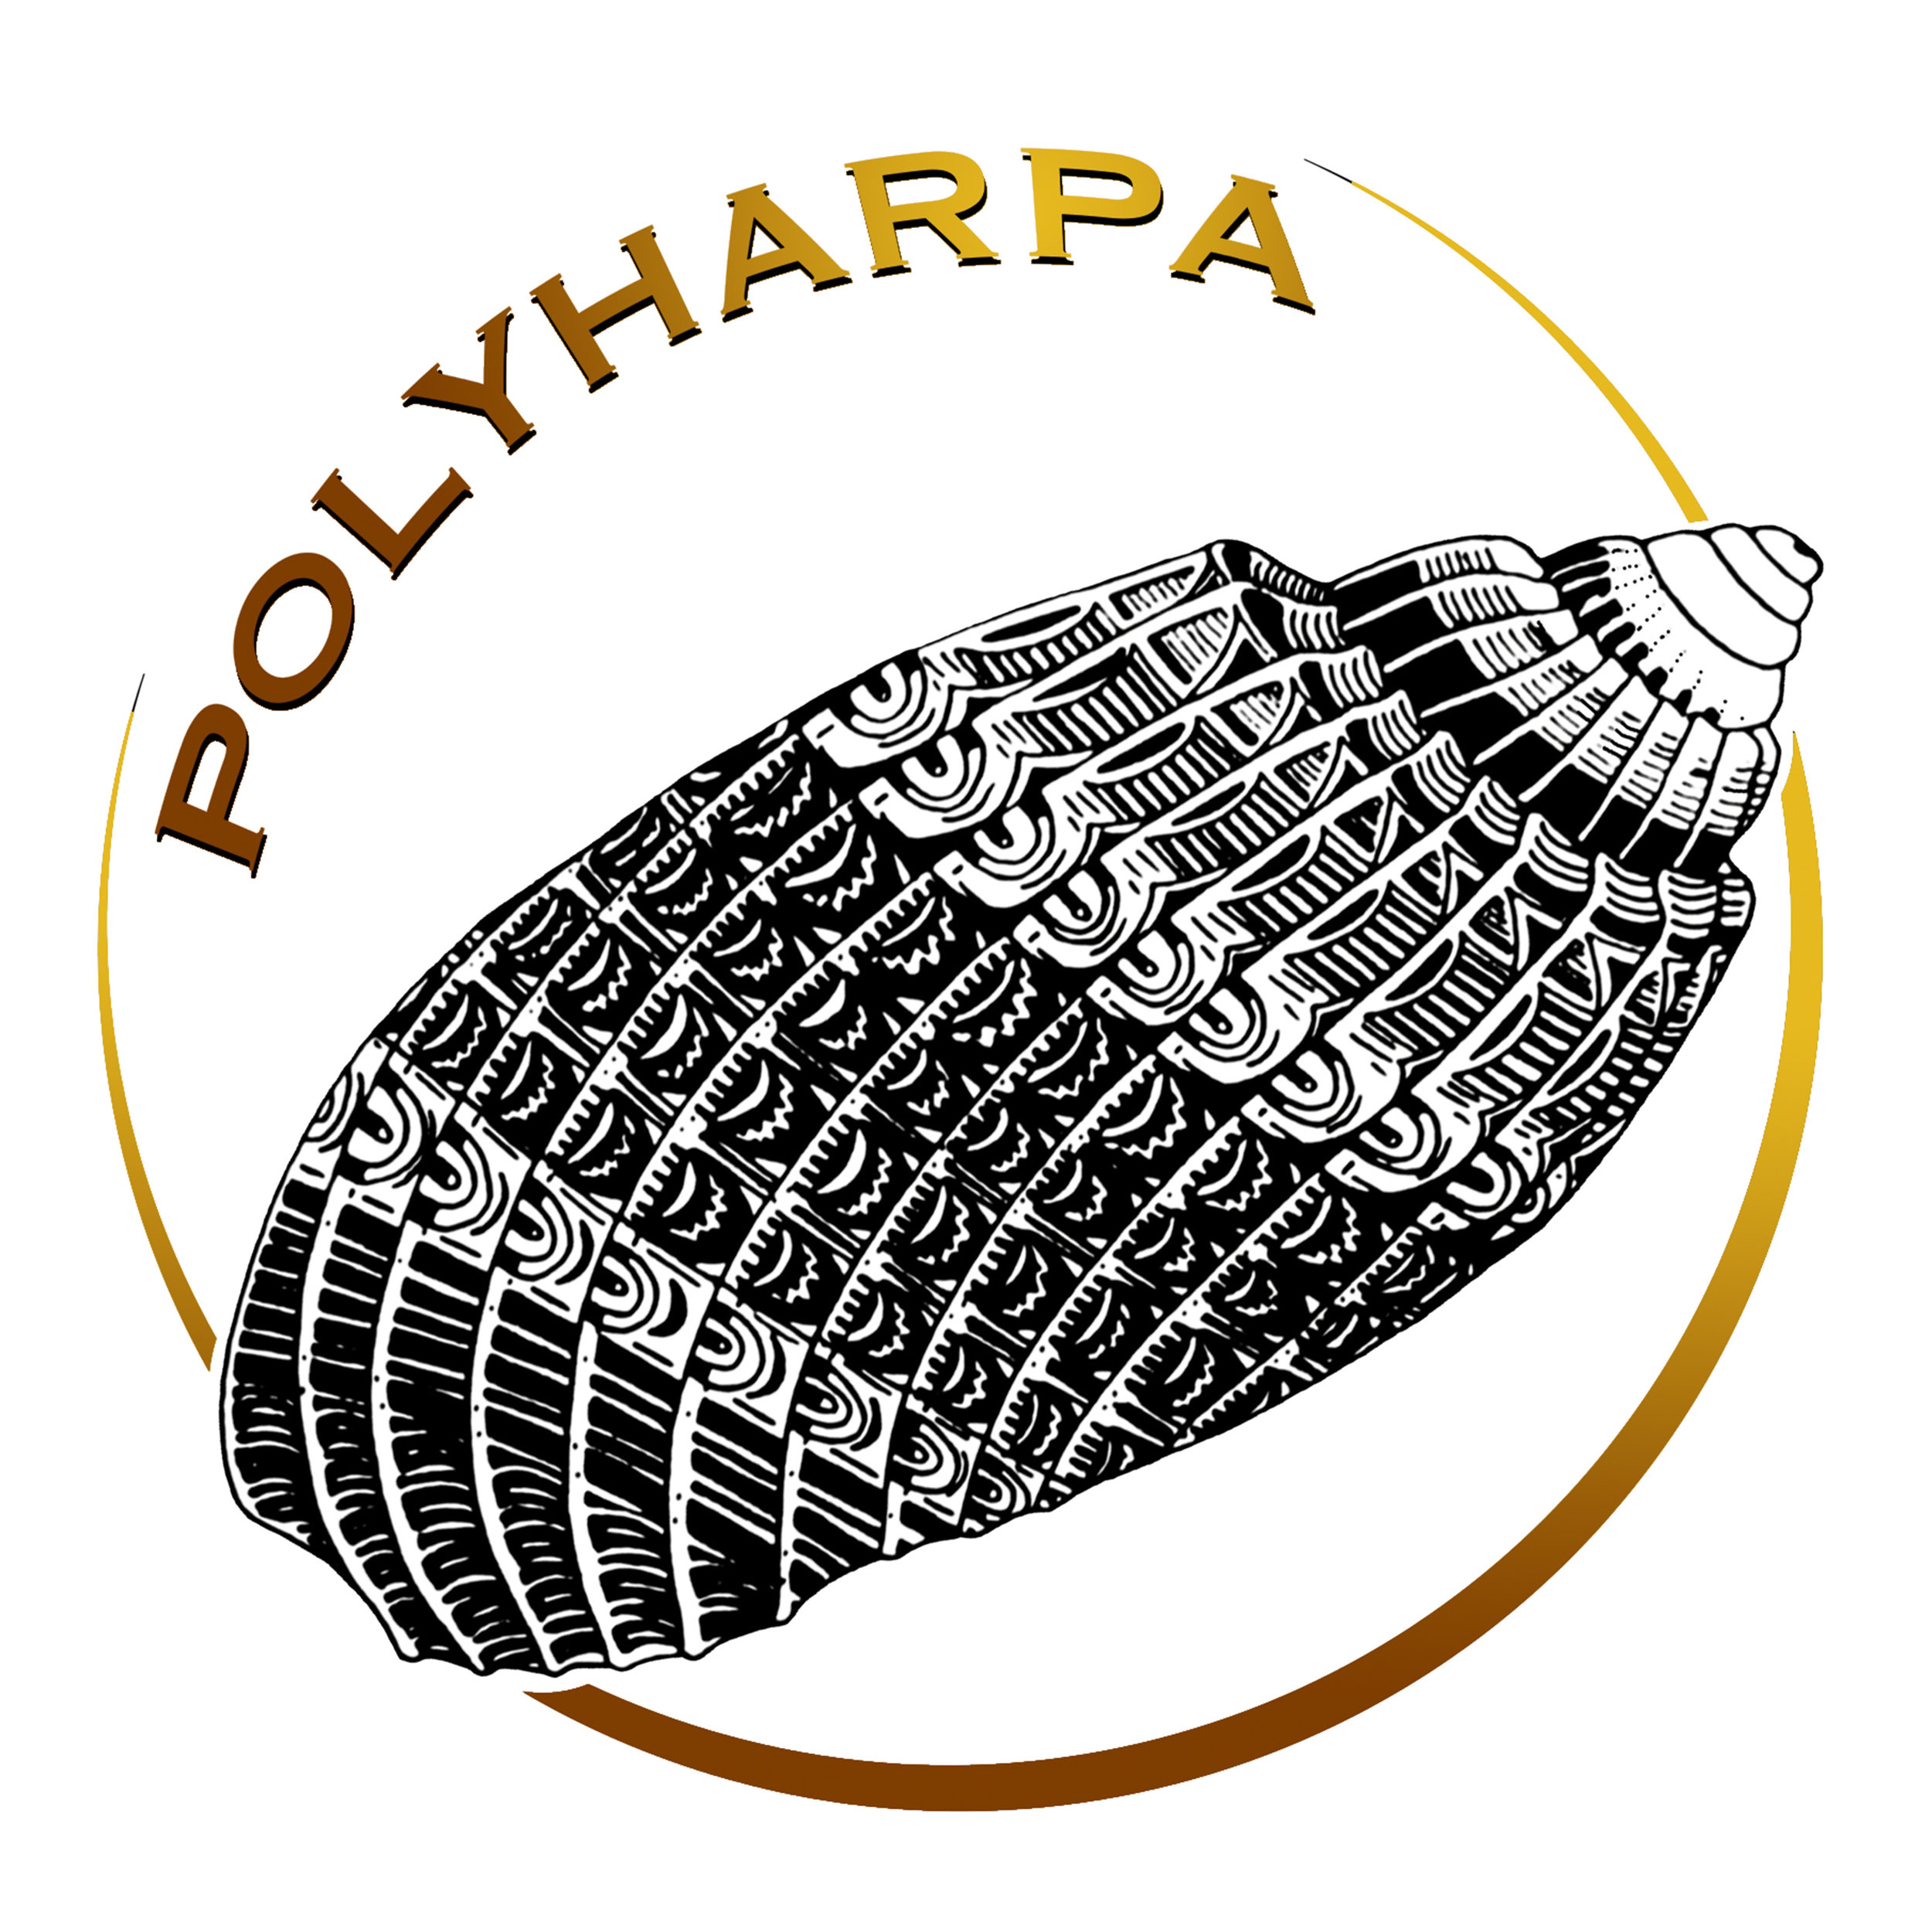 polyharpa-project-logo